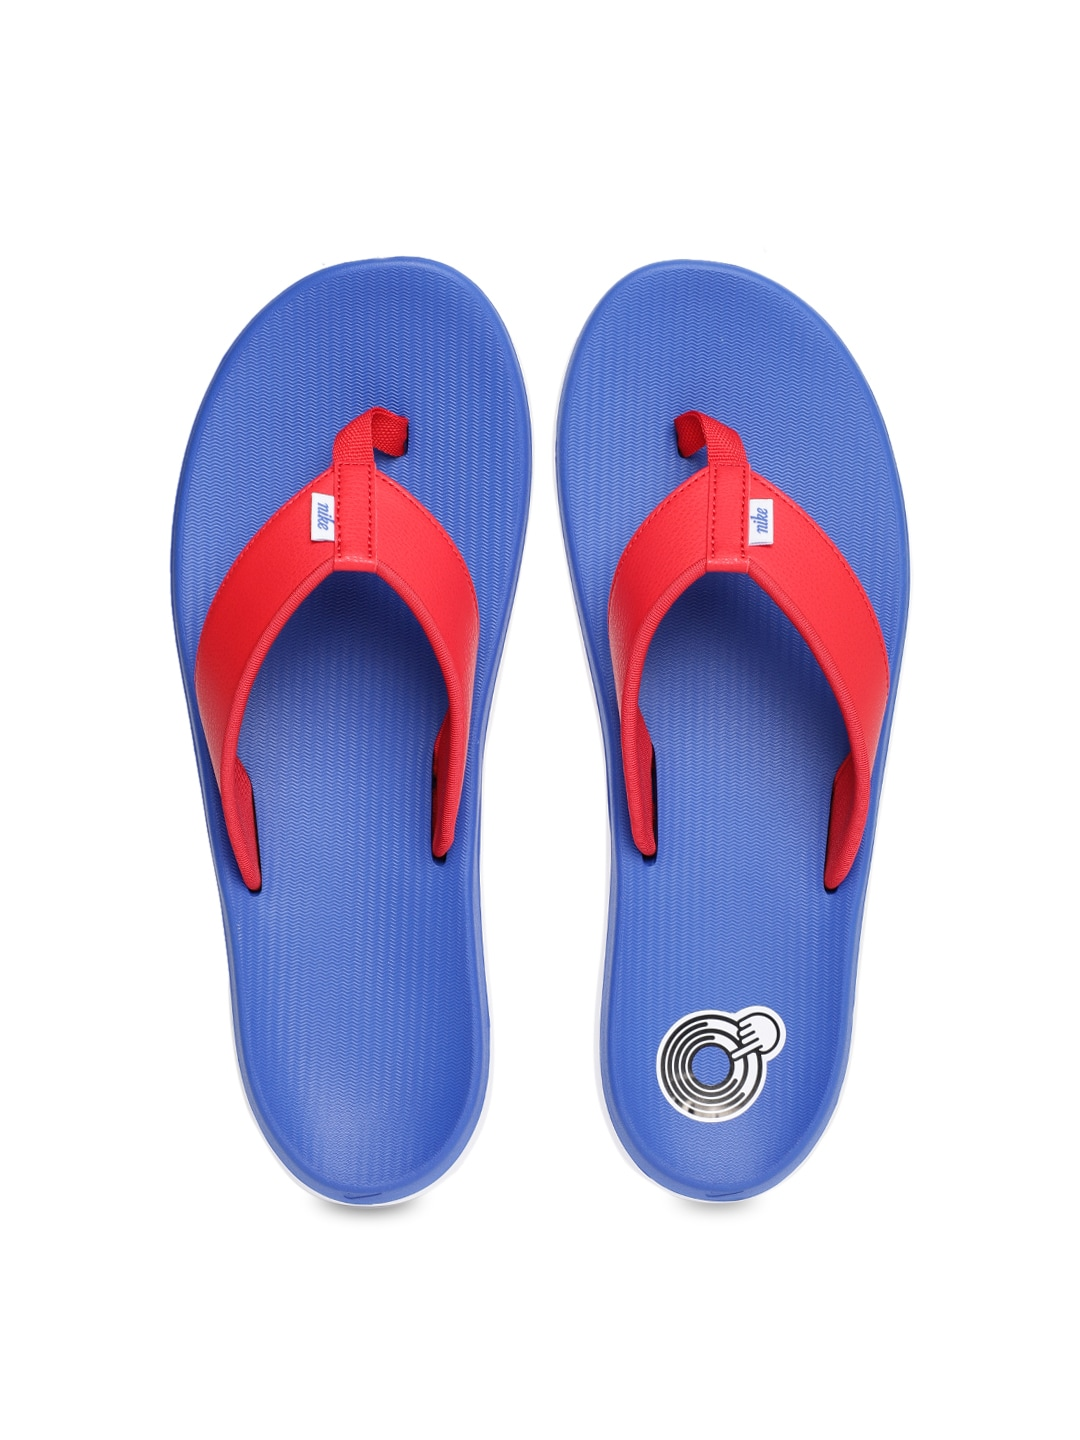 83b071aa951 Nike Flip-Flops - Buy Nike Flip-Flops for Men Women Online